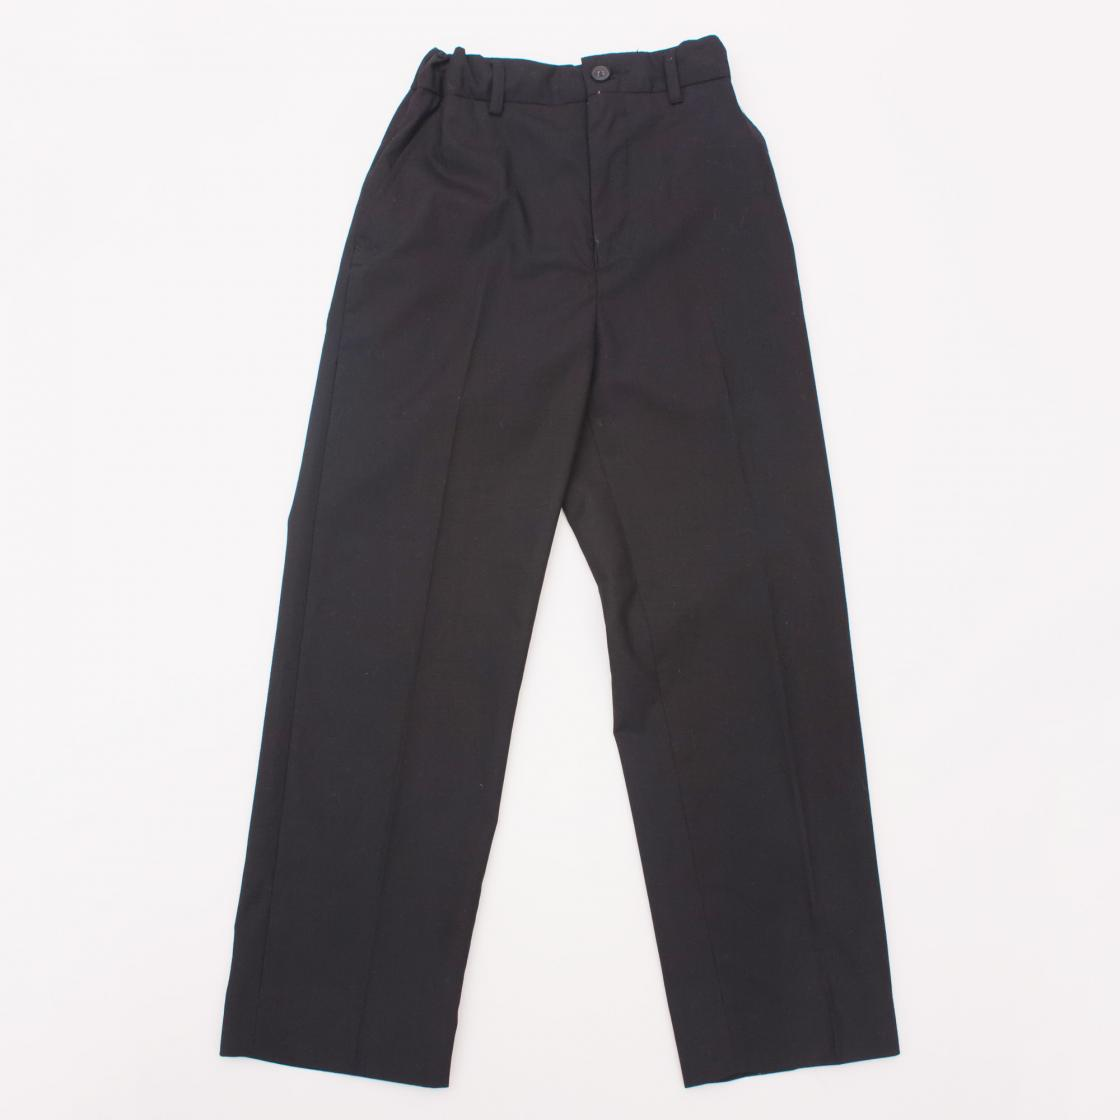 Indie Black Suit Pants